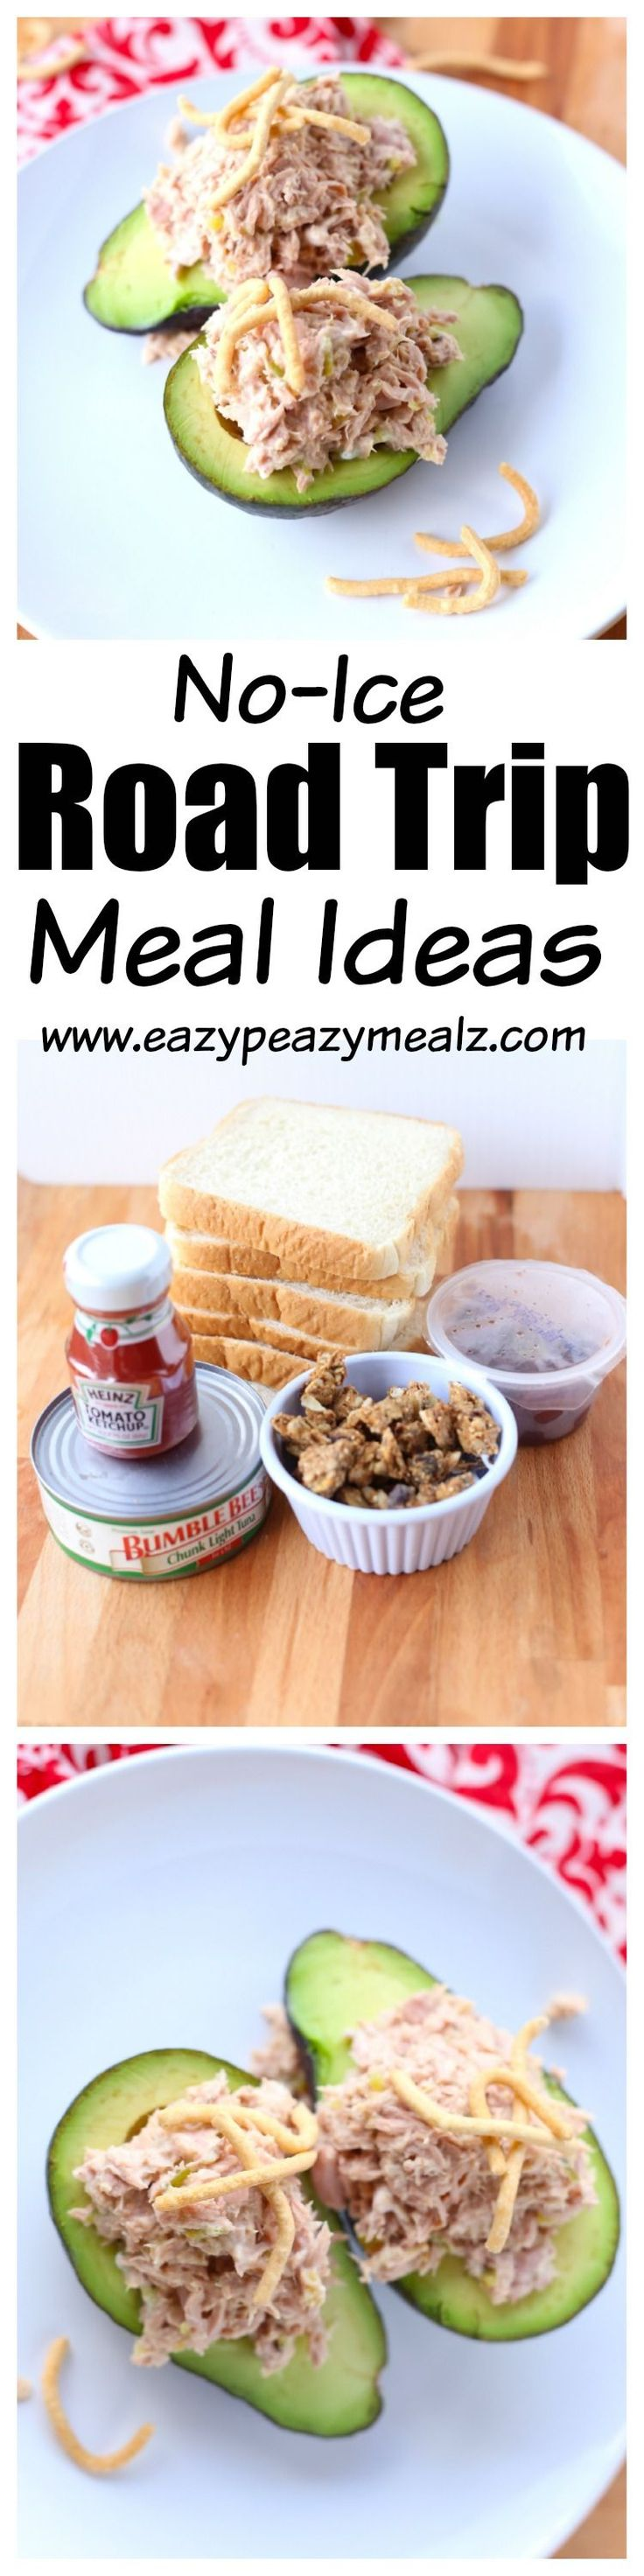 Road trip meals that do not require ice: tasty meals that save money, time, and hassle because they don't require ice and can be made on the road! #ad - Eazy Peazy Mealz